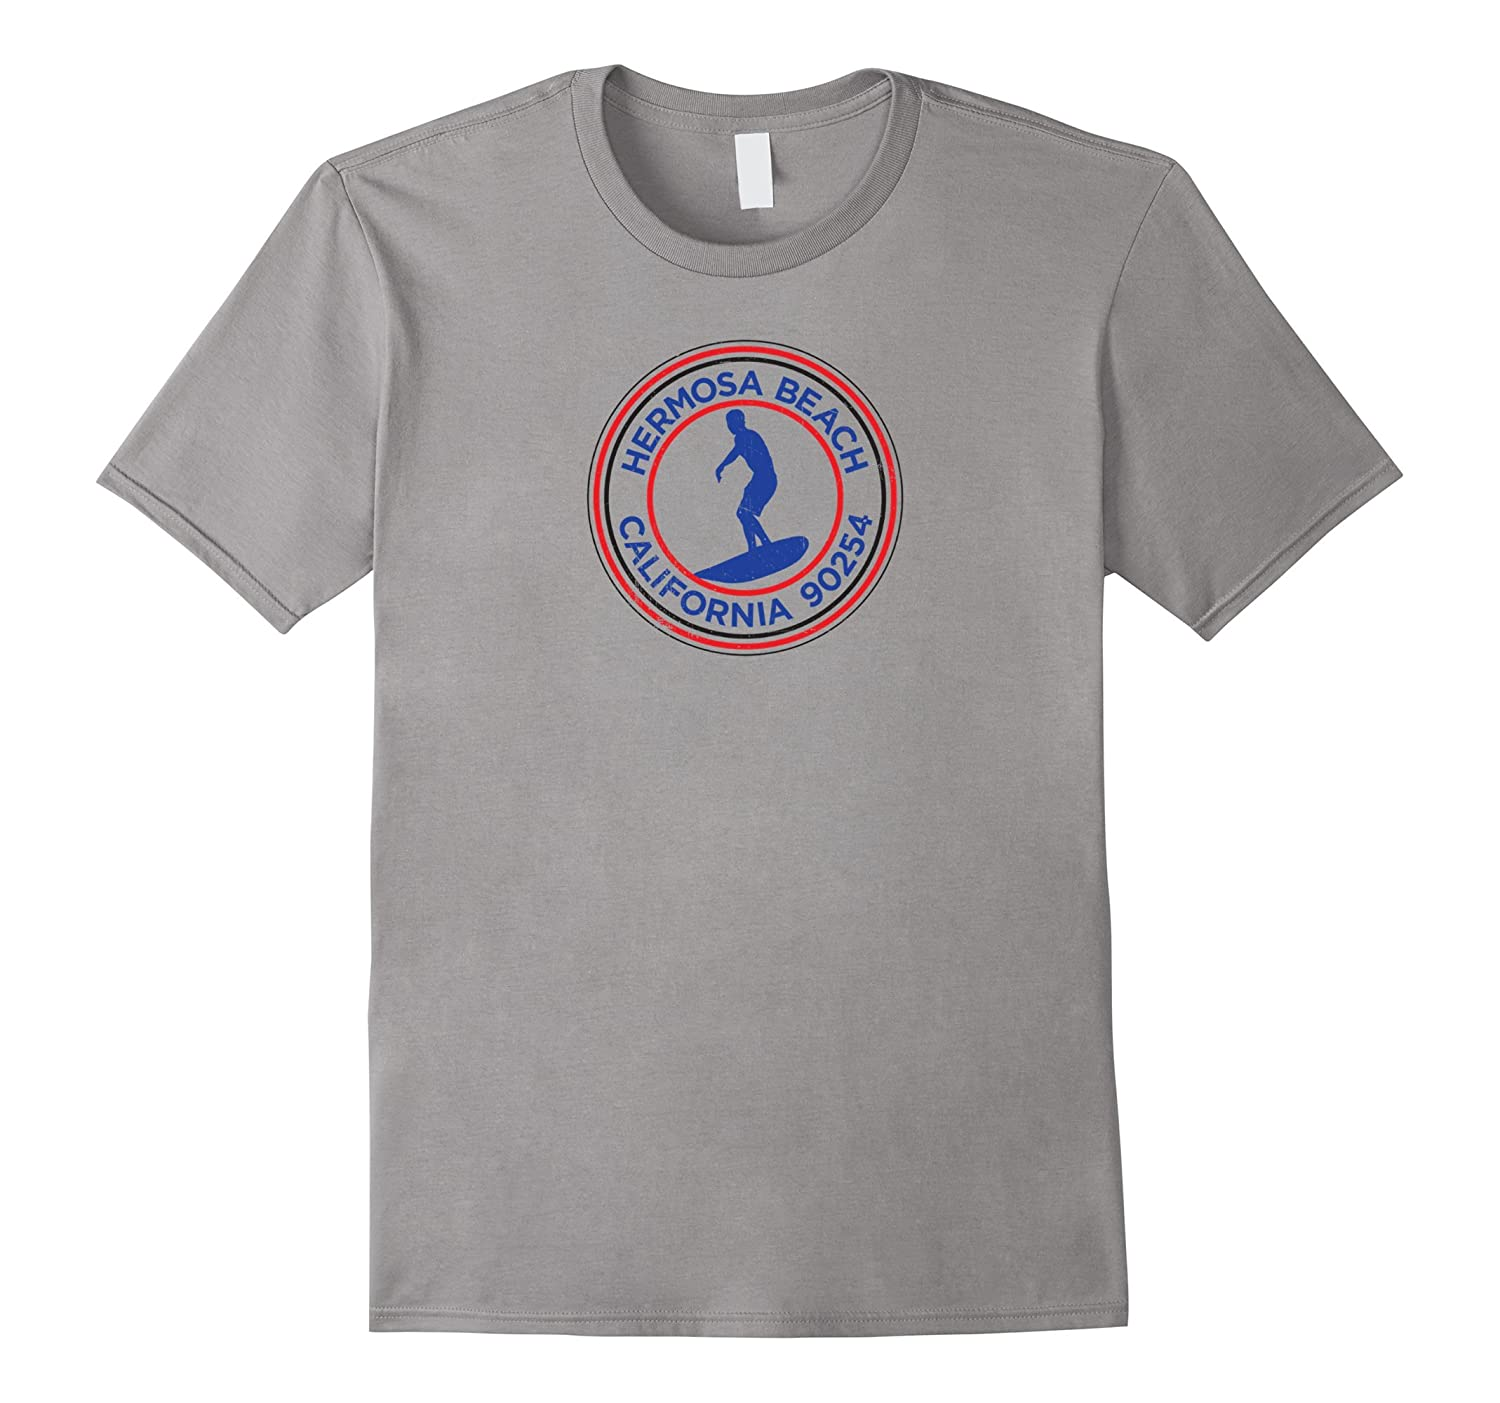 HERMOSA BEACH California Souvenir Surf T-Shirt-TJ